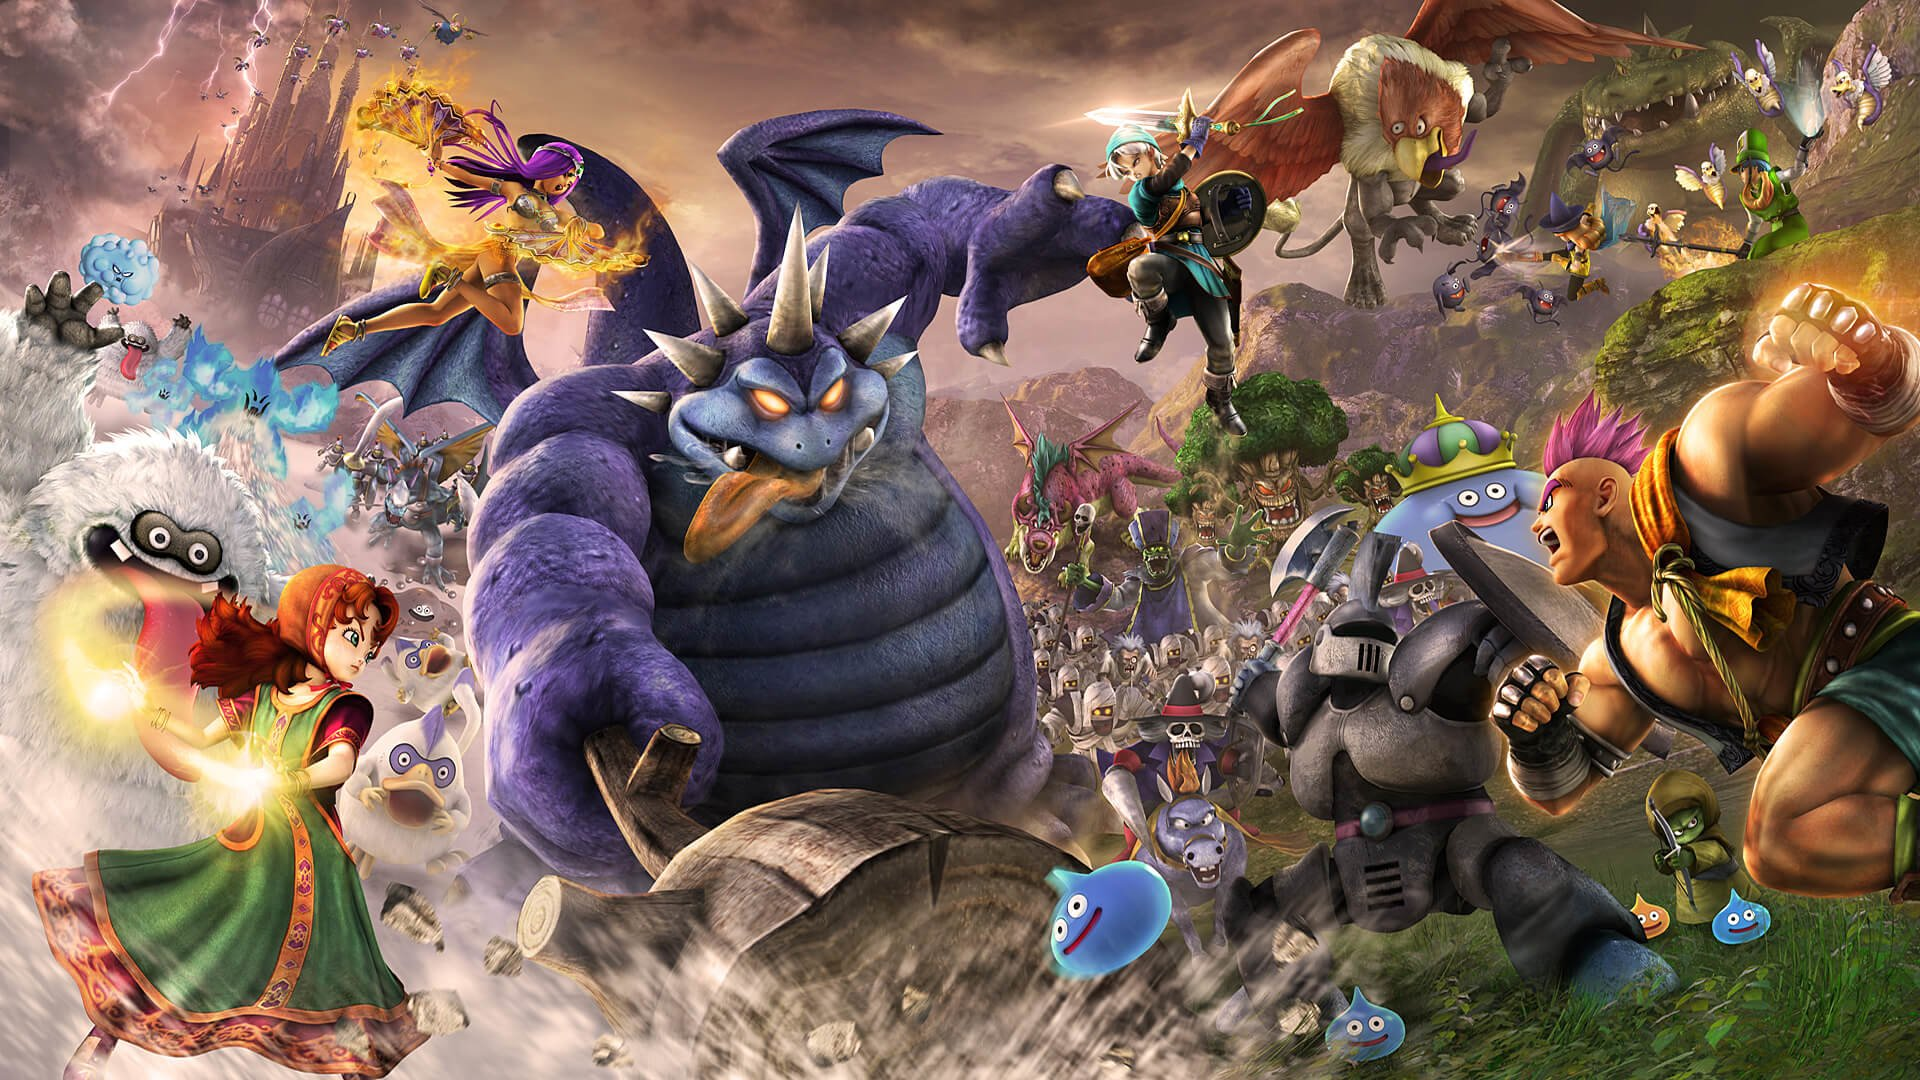 4 Dragon Quest Heroes Ii Hd Wallpapers Background Images Wallpaper Abyss